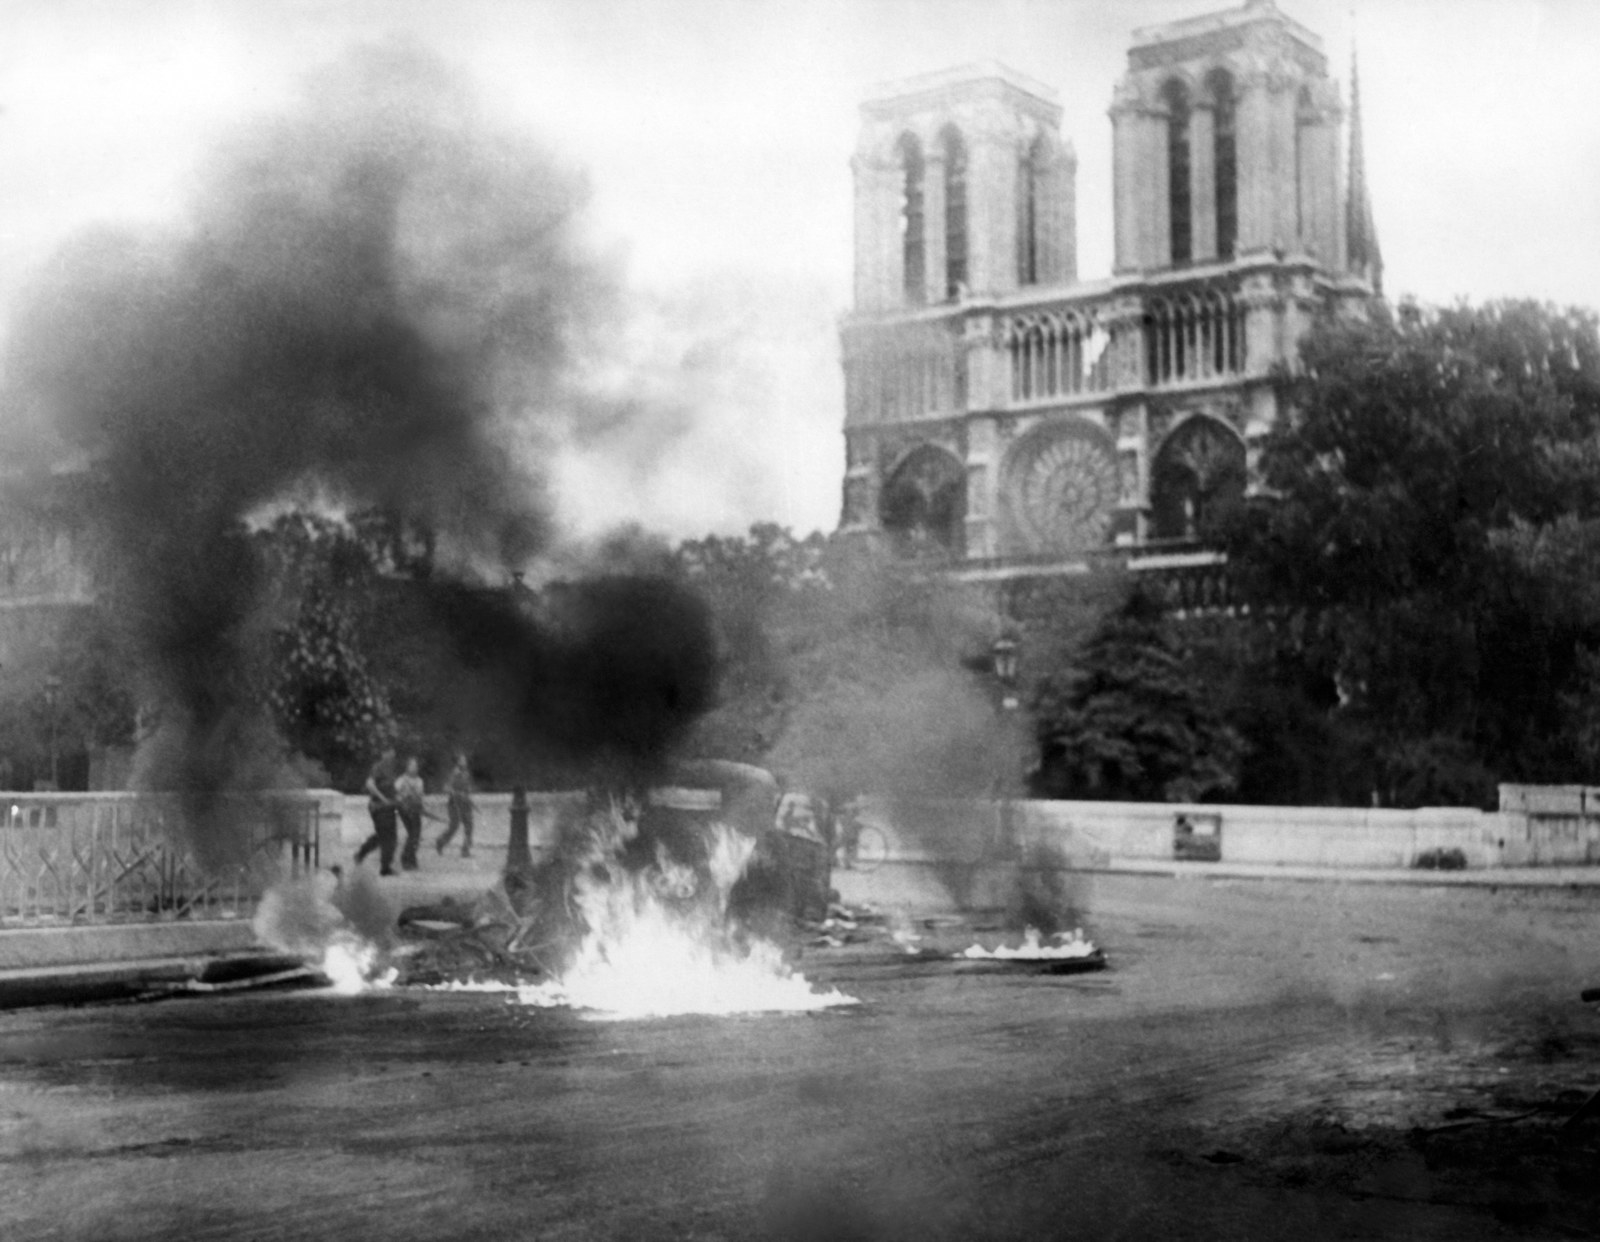 A photo taken of a flaming vehicle circa Aug. 23, 1944, close to the Pont Saint-Michel and Notre Dame Cathedral during the Battle of Paris, a few days before the city's liberation on Aug. 25, 1944.